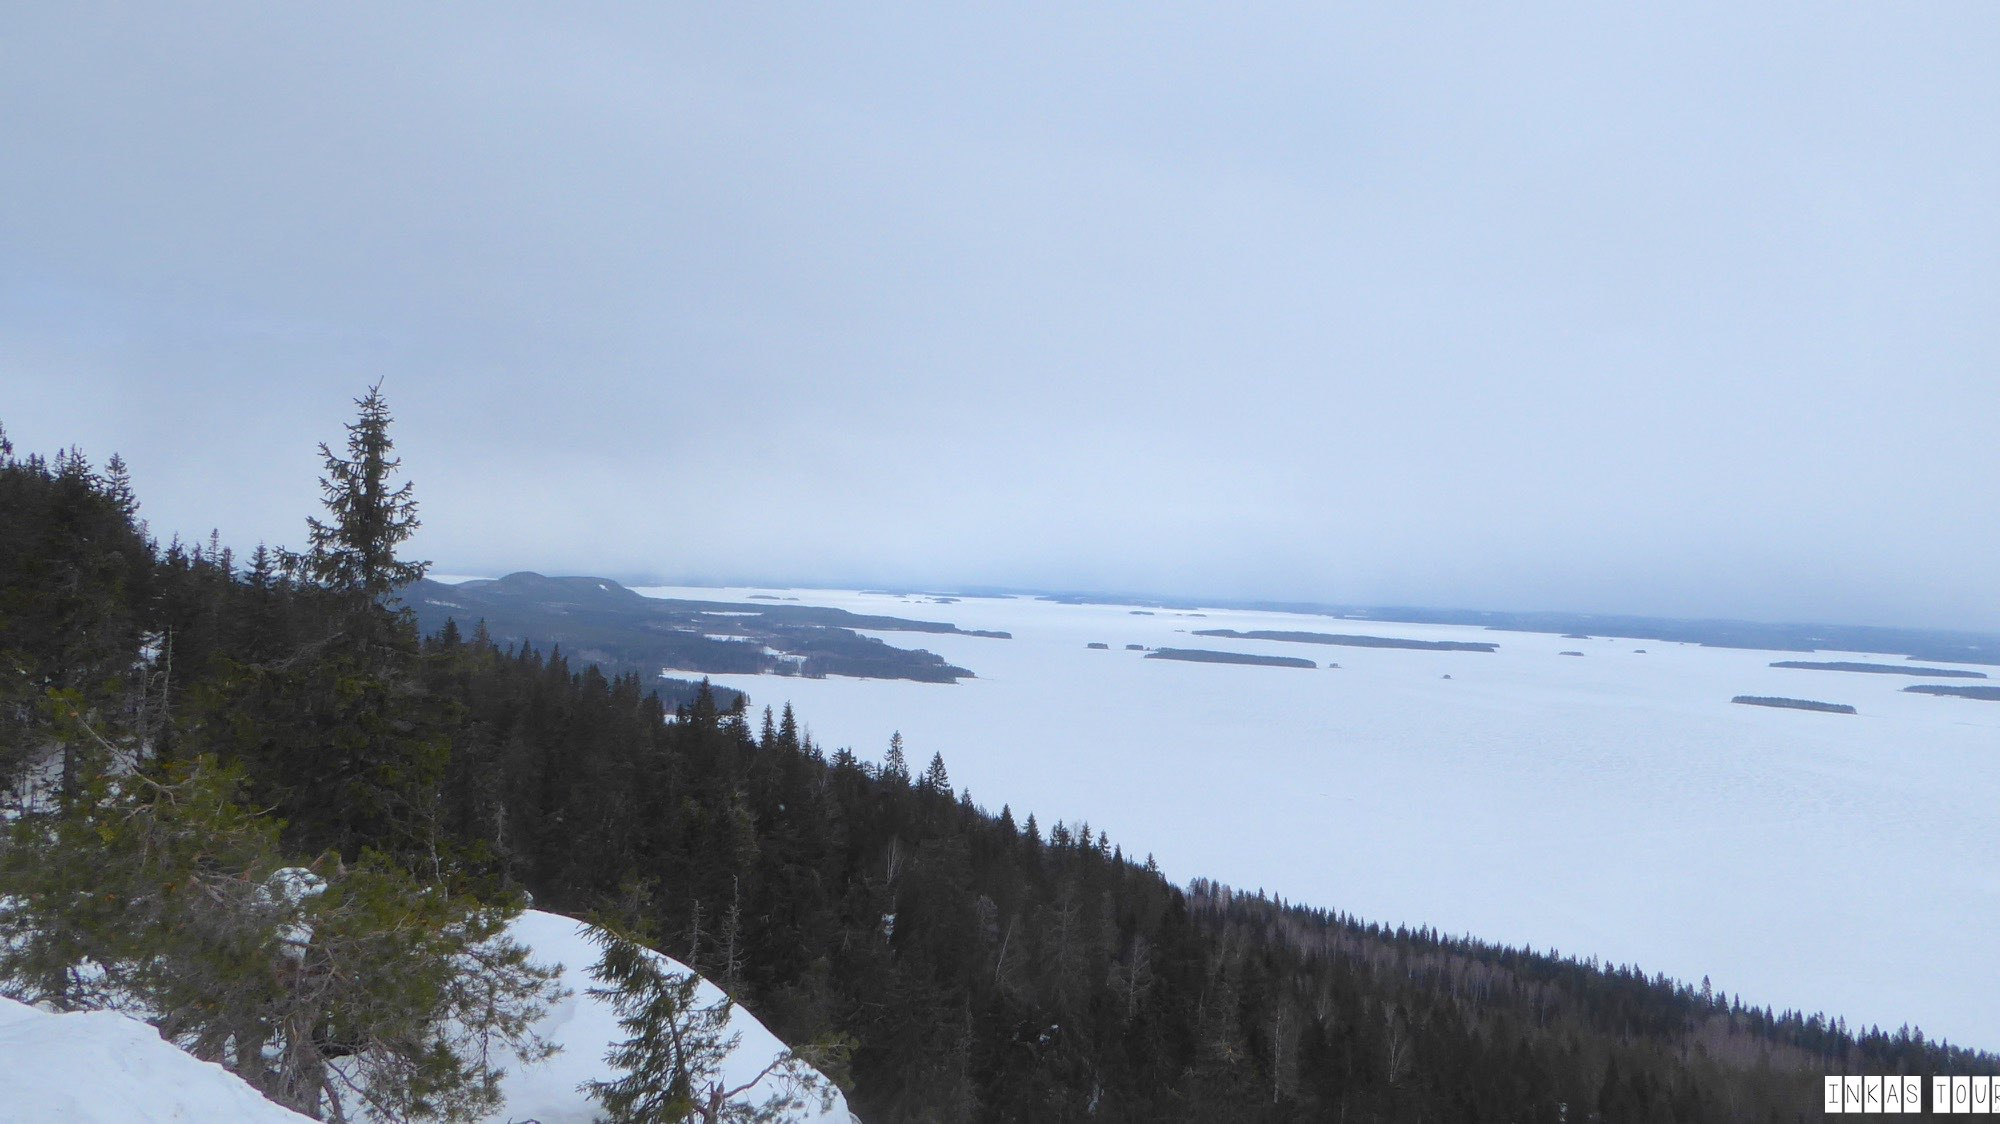 Koli National Park Circuit to the Tops Finland Vacation Inkas Tour Photography Salad around the World